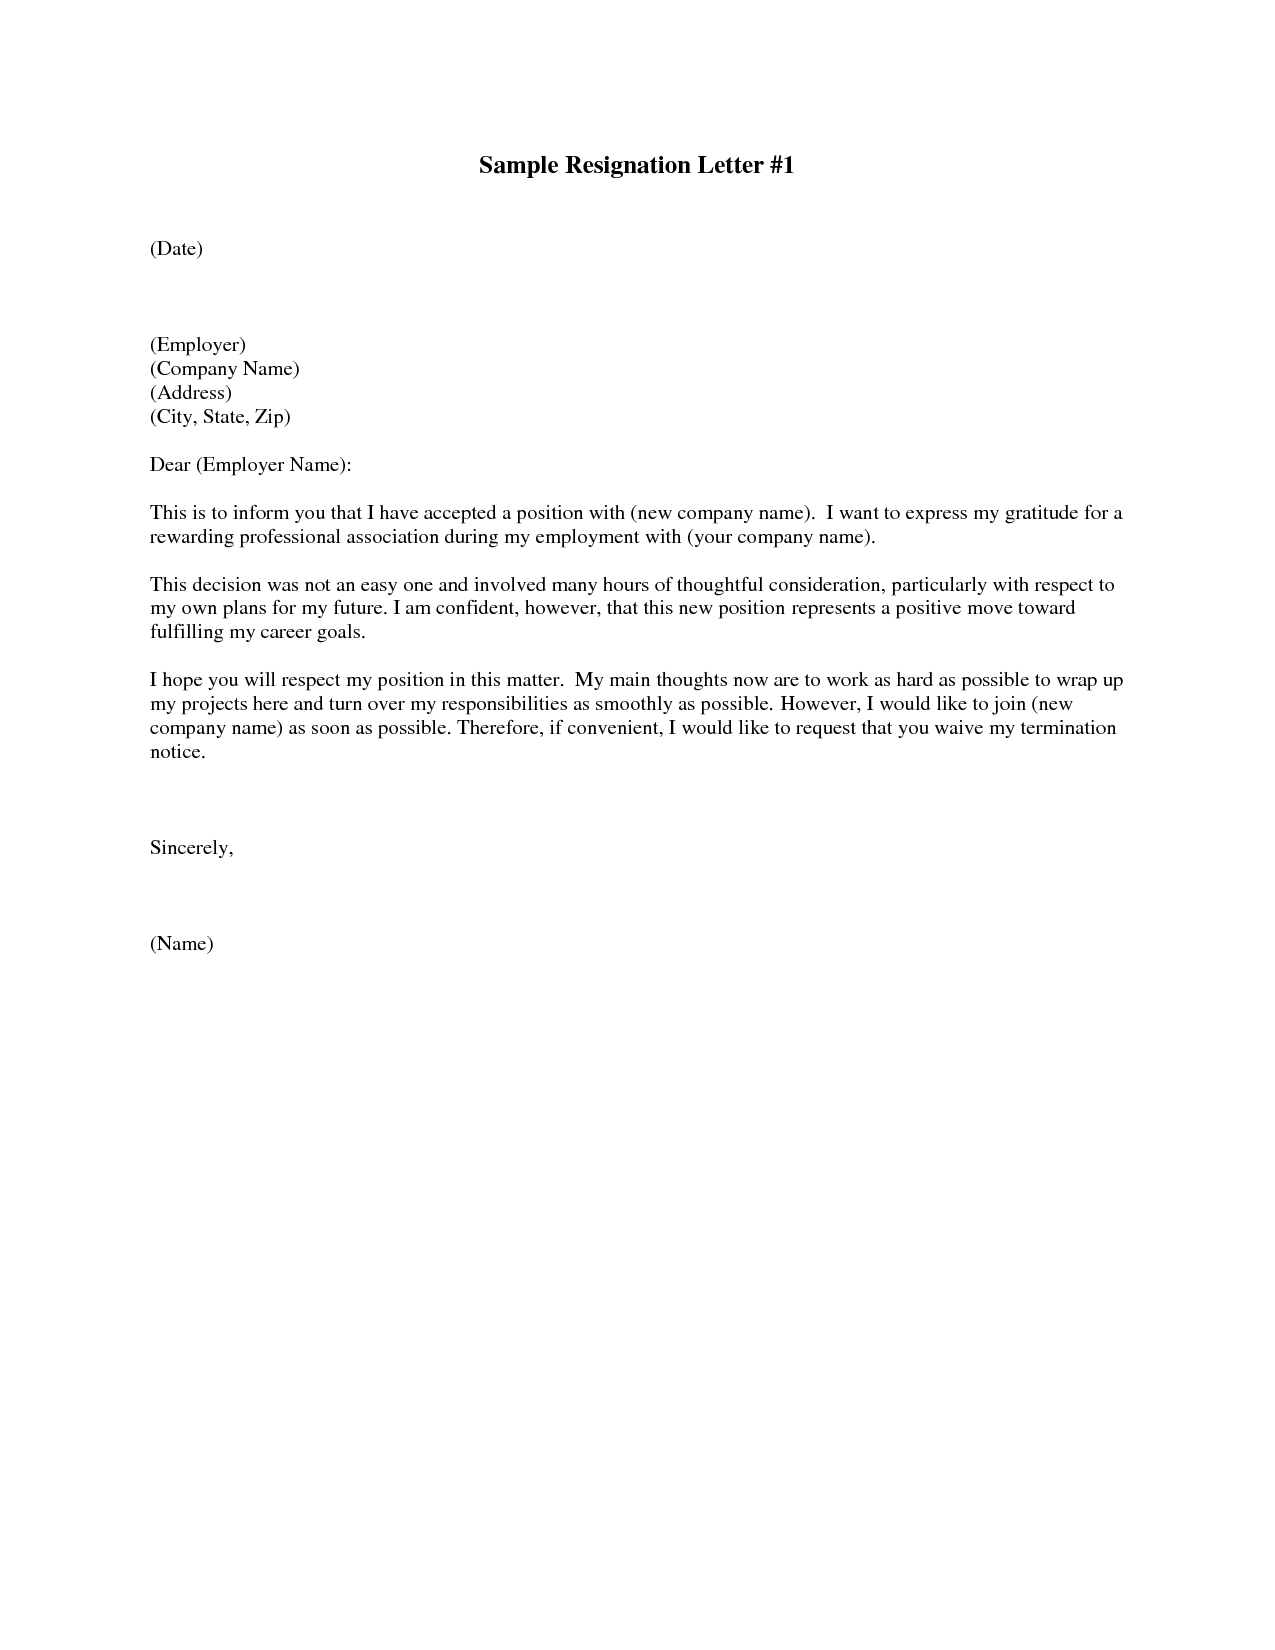 Sample Of Resignation Letter From Job Sample Job Resignation Letter Format Company Profile Template Easy